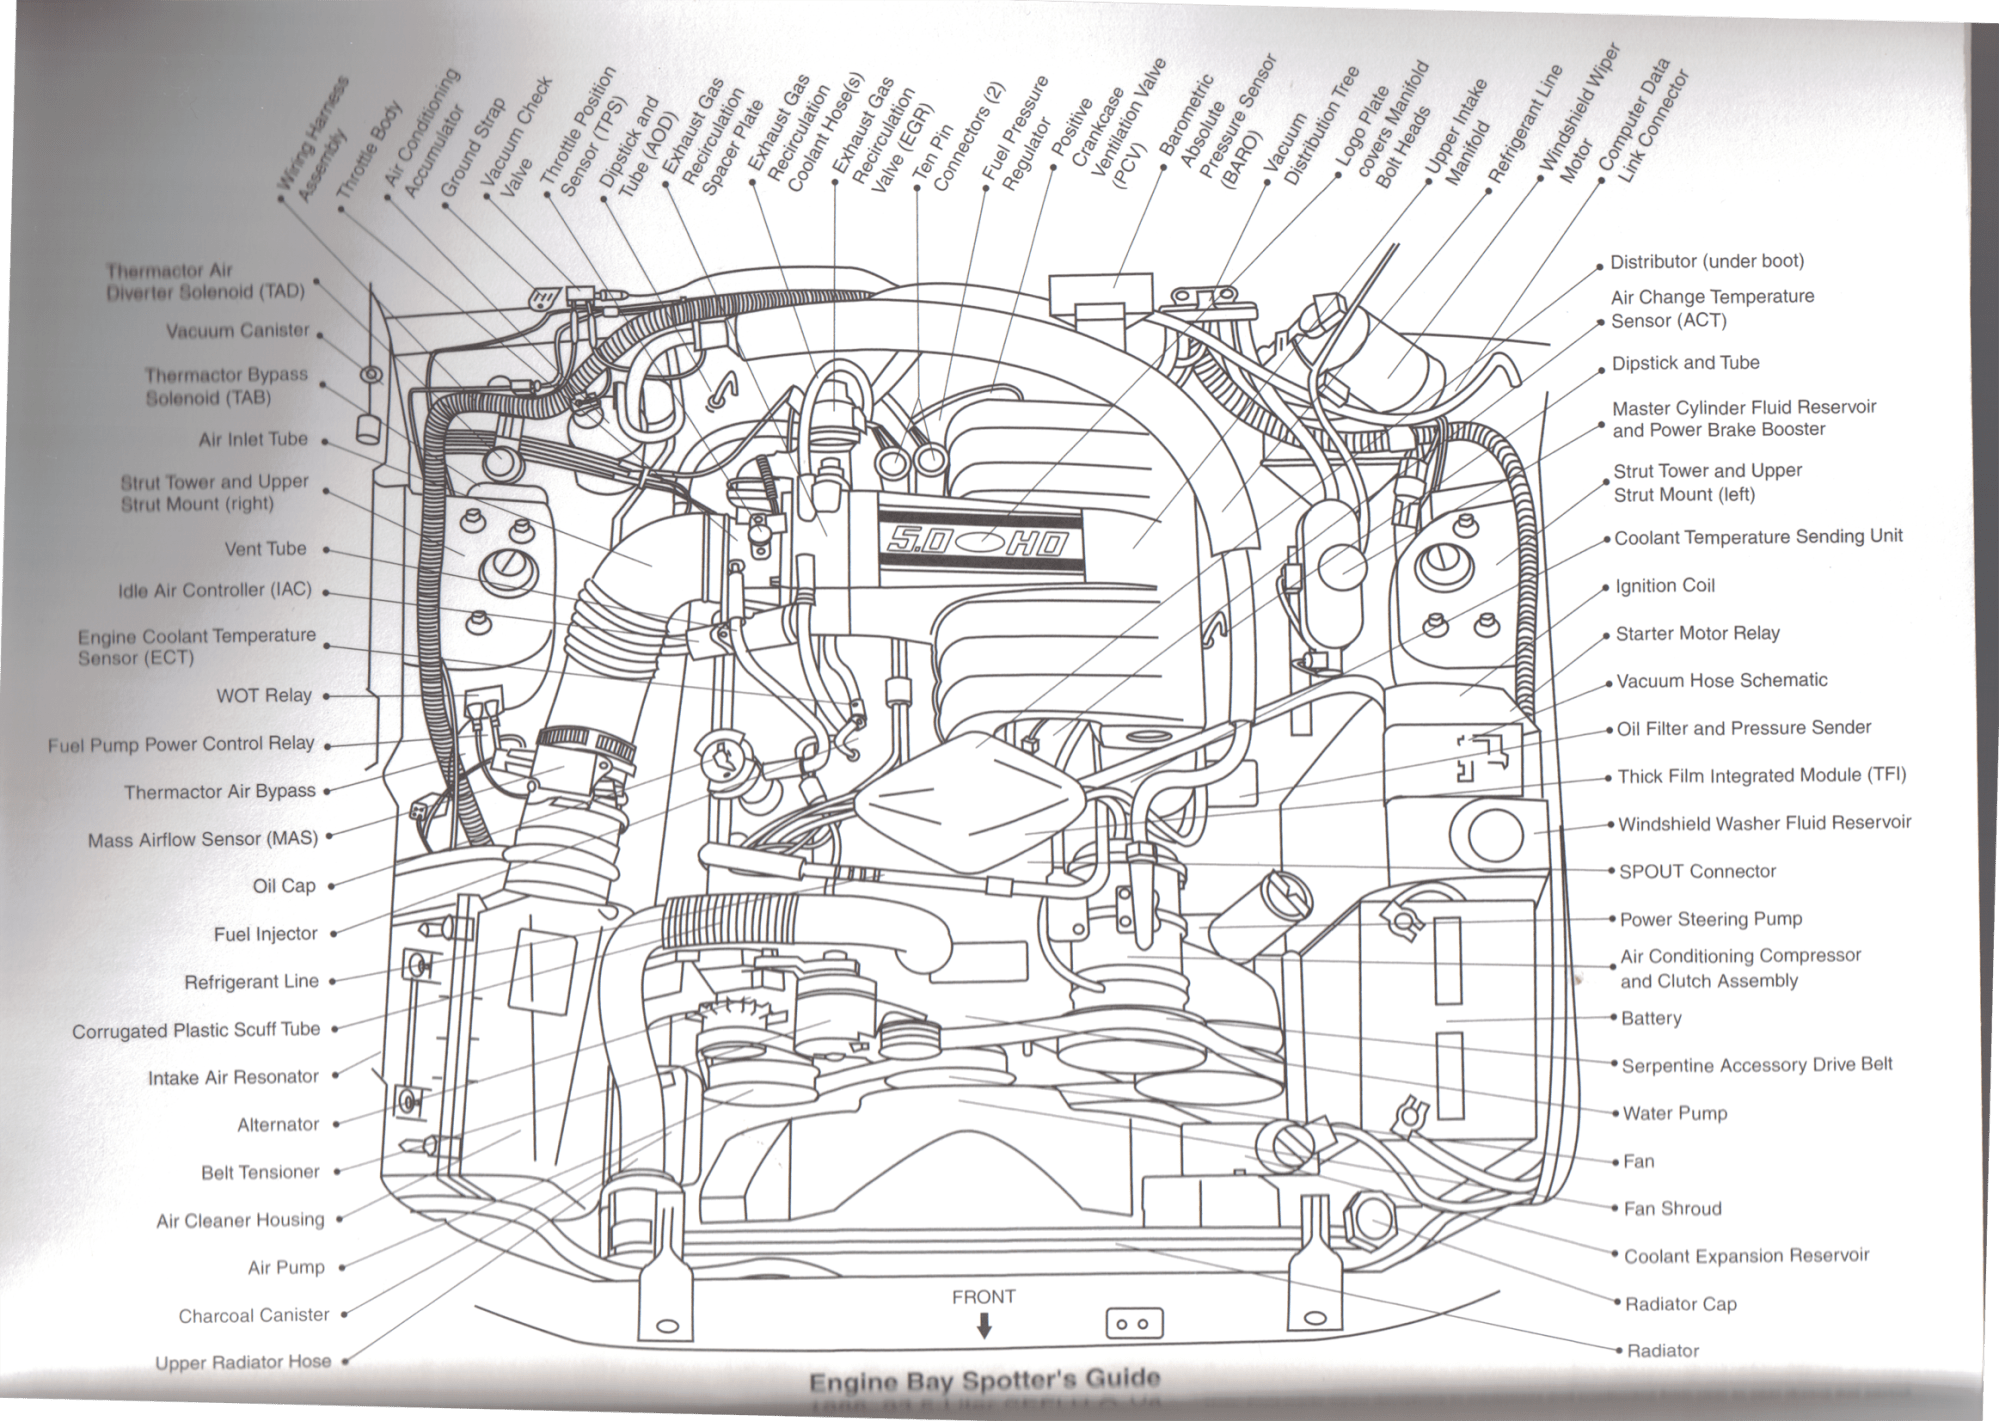 hight resolution of 1990 mustang engine diagram wiring diagram name 1990 mustang 5 0 engine wiring diagram wiring diagram